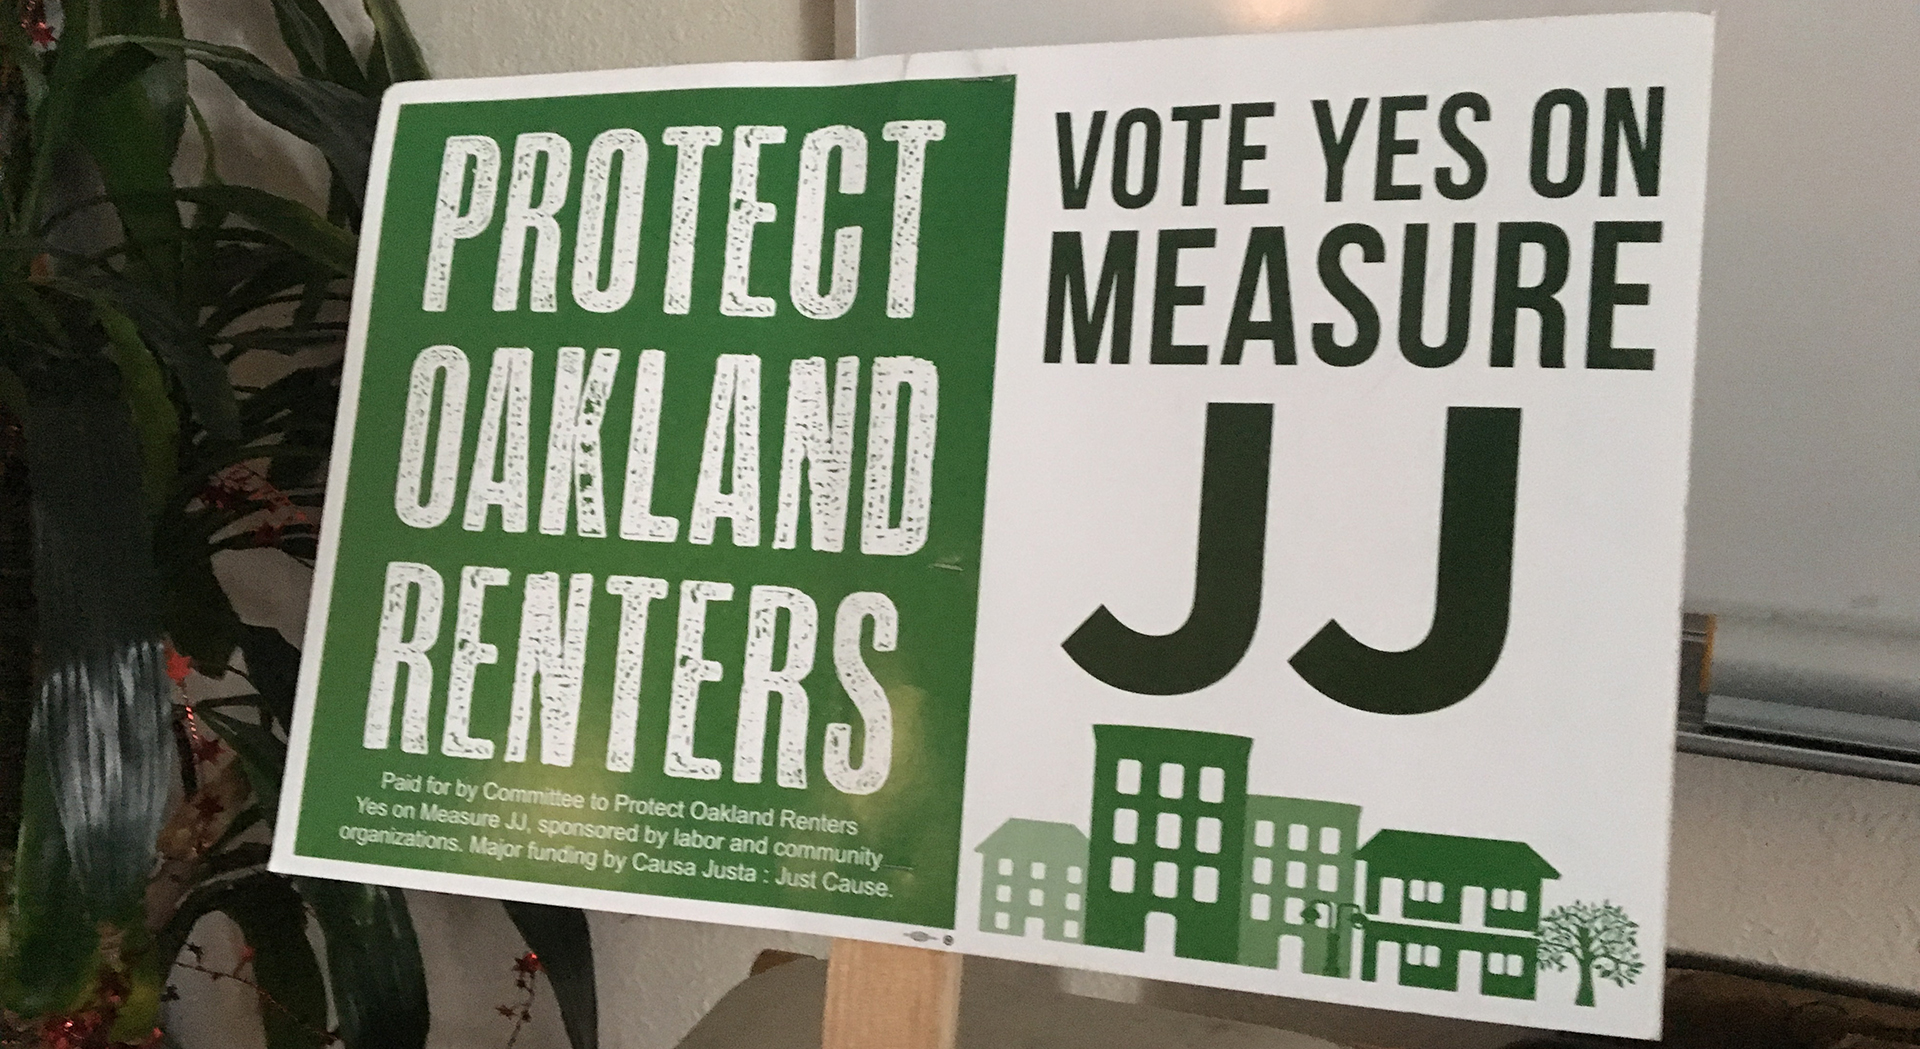 Measure JJ Oakland